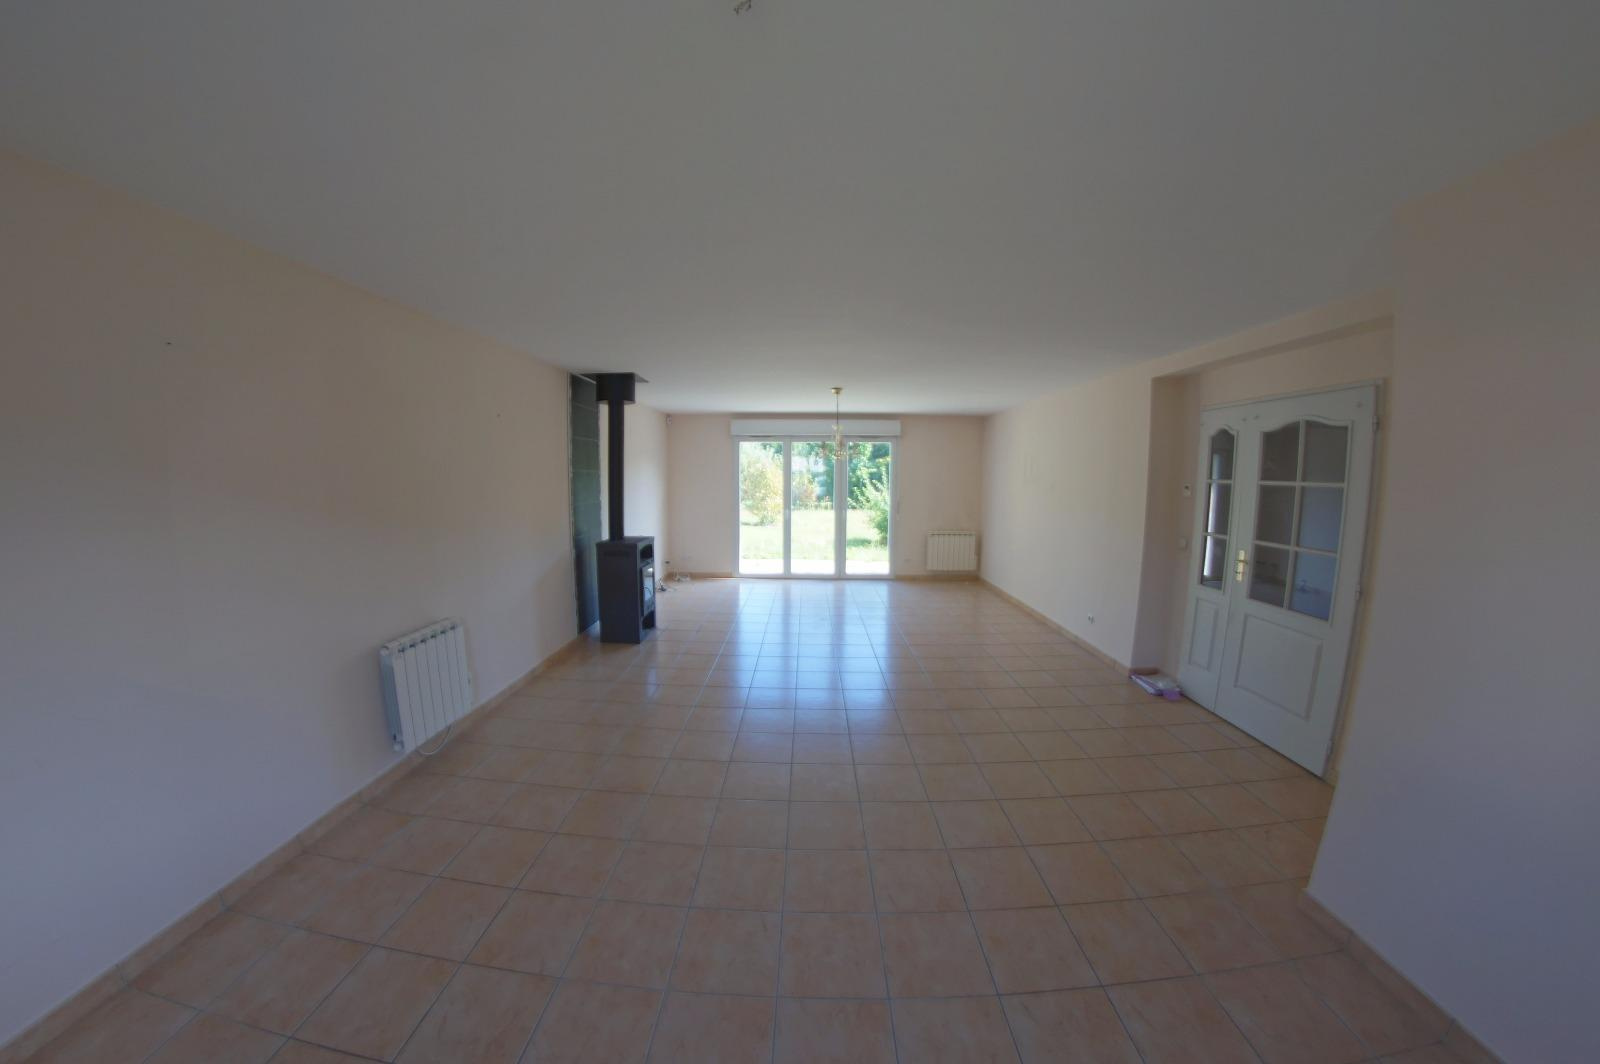 Vente saint genis pouilly maison individuelle 115m2 for Comcode postal saint genis pouilly